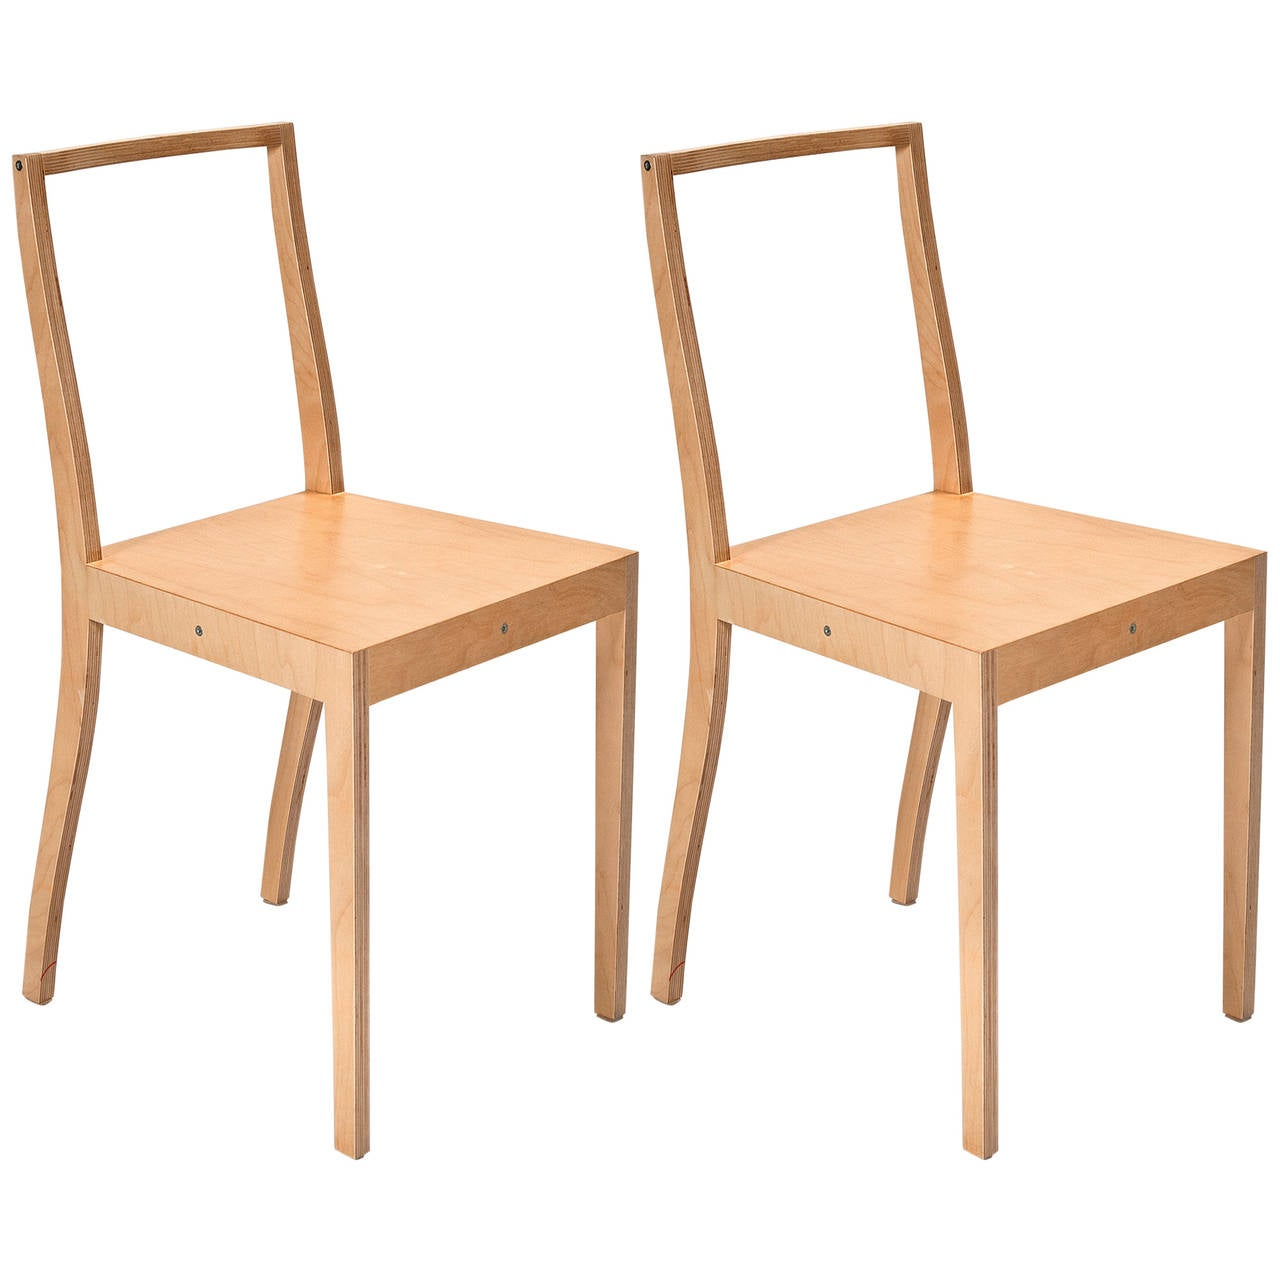 Ply Chair Open Back Pair Of Chairs By Jasper Morrison For Vitra For Sale